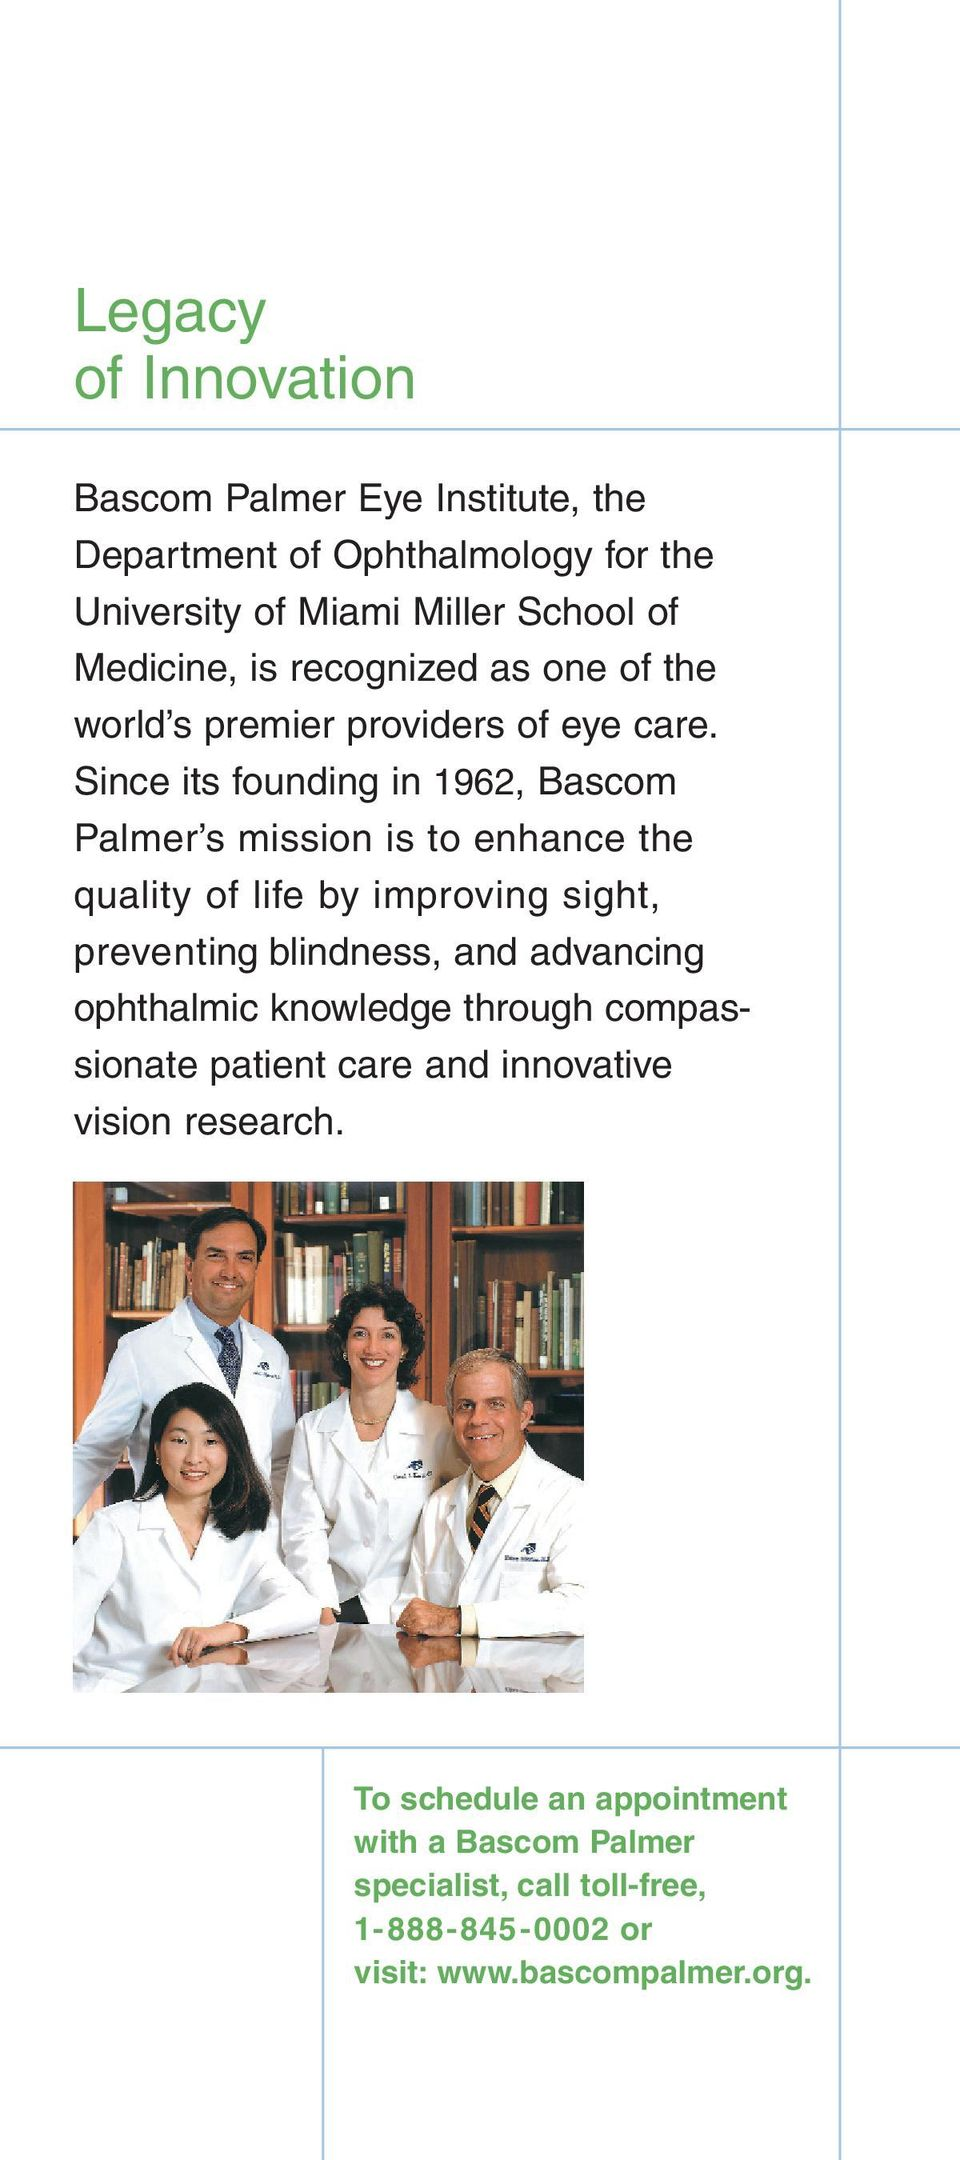 Since its founding in 1962, Bascom Palmer s mission is to enhance the quality of life by improving sight, preventing blindness, and